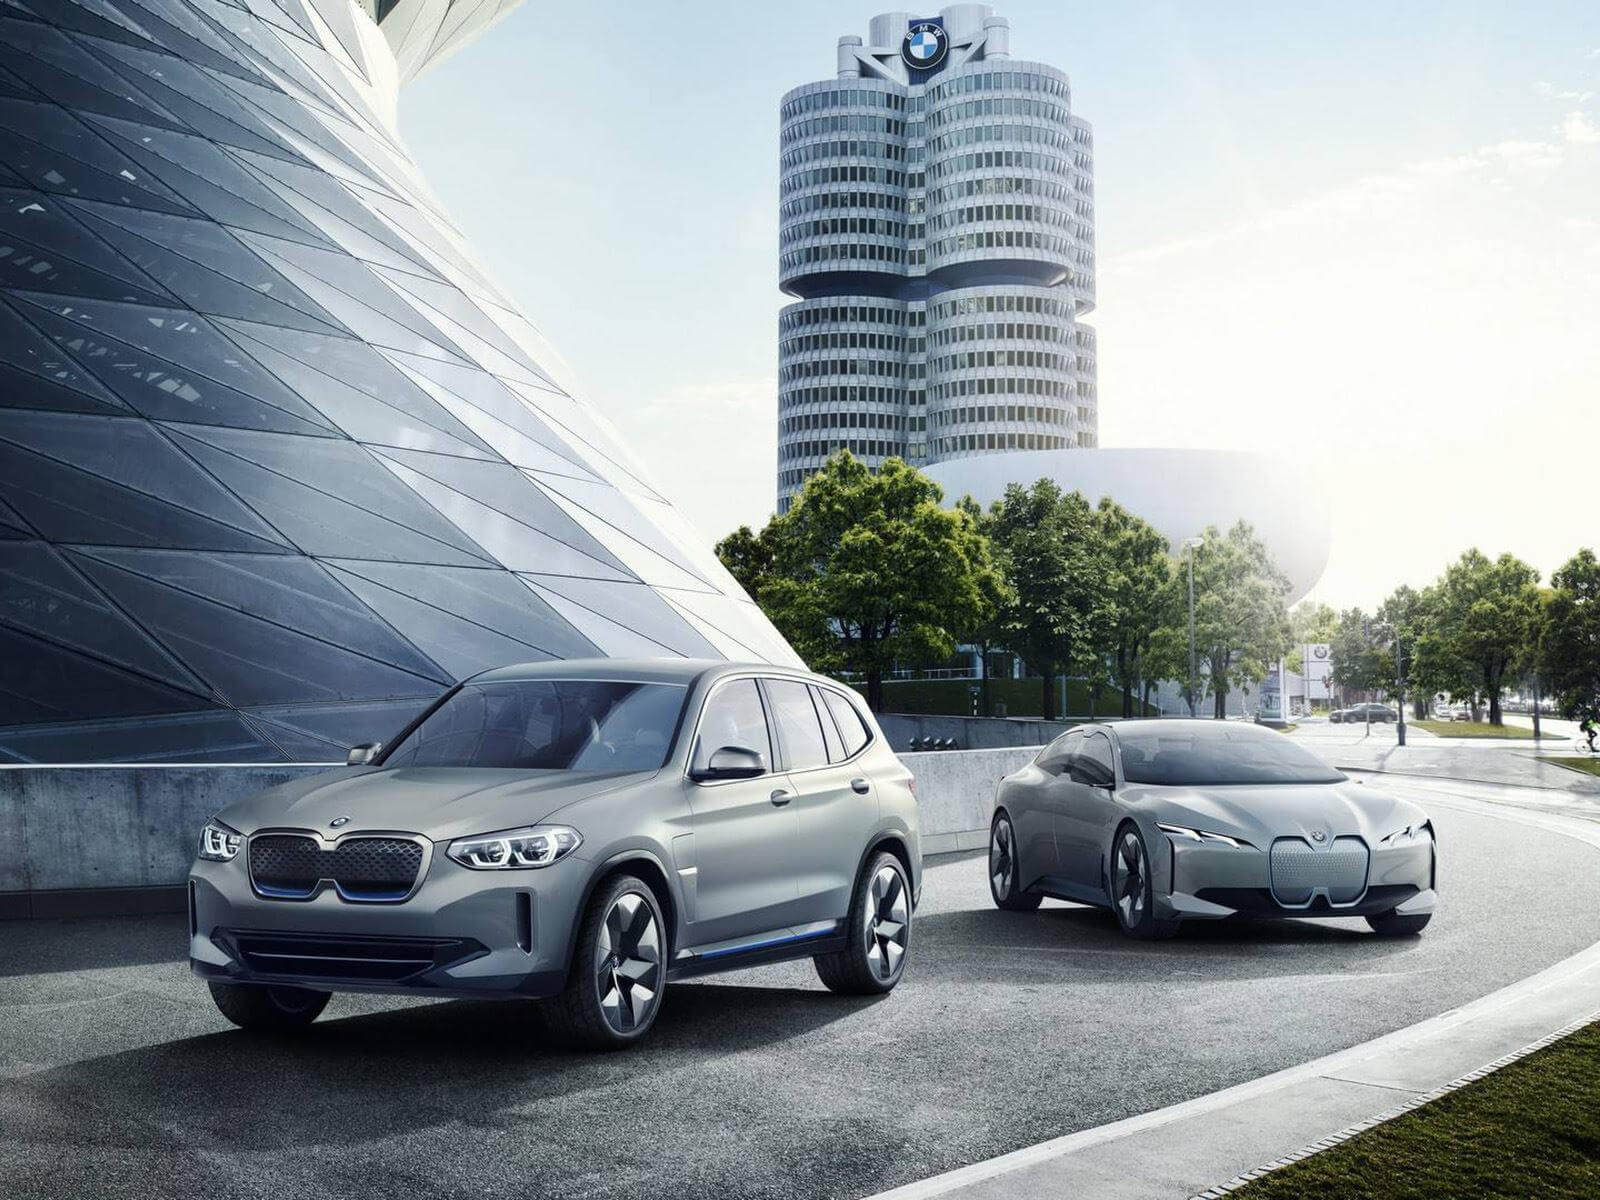 BMW Predicts EVs To Make Up 25 Percent Of Sales By 2025